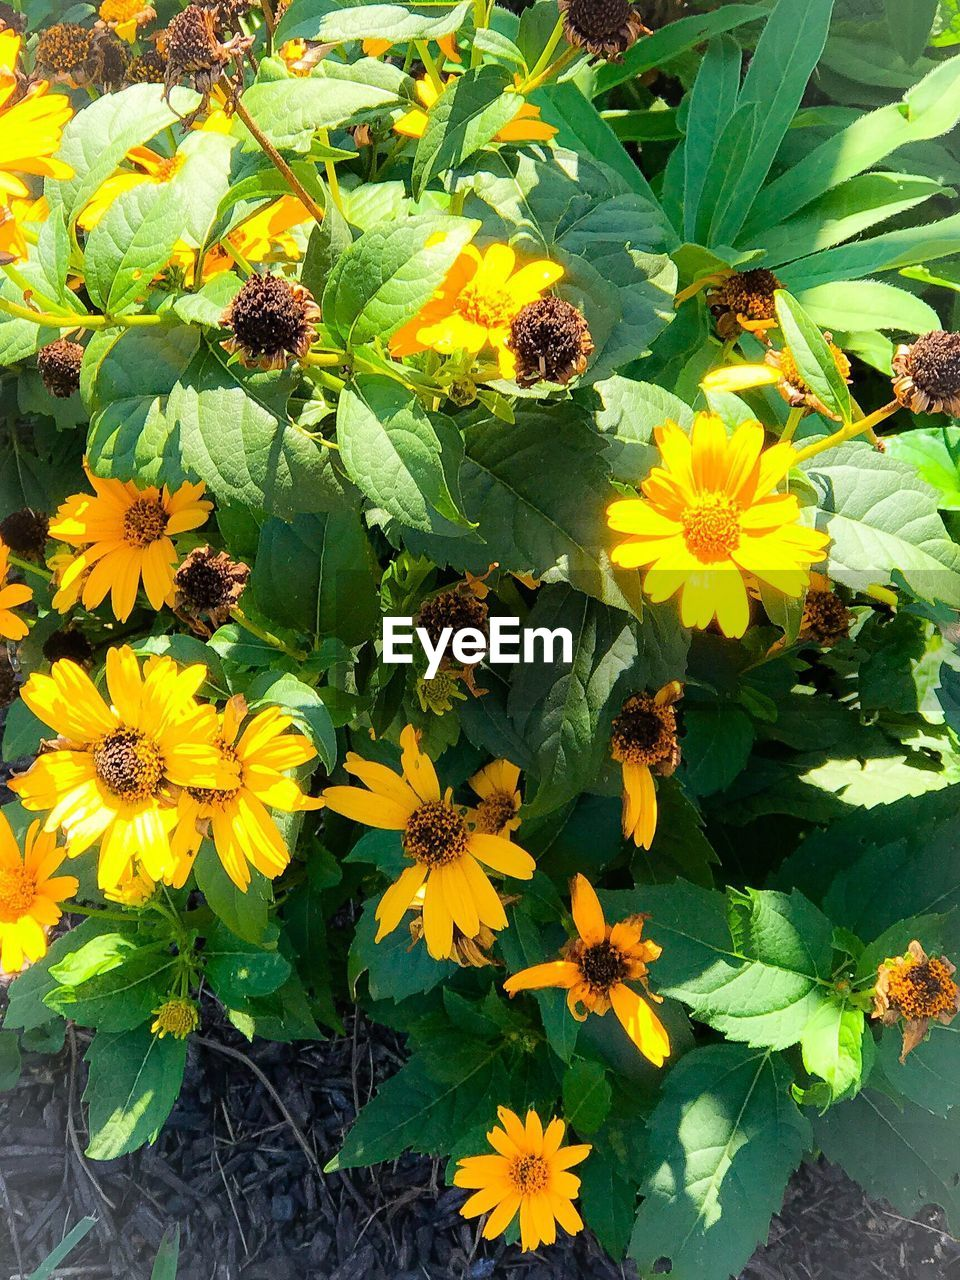 flower, growth, nature, petal, freshness, fragility, plant, beauty in nature, yellow, blooming, flower head, outdoors, high angle view, day, no people, field, leaf, close-up